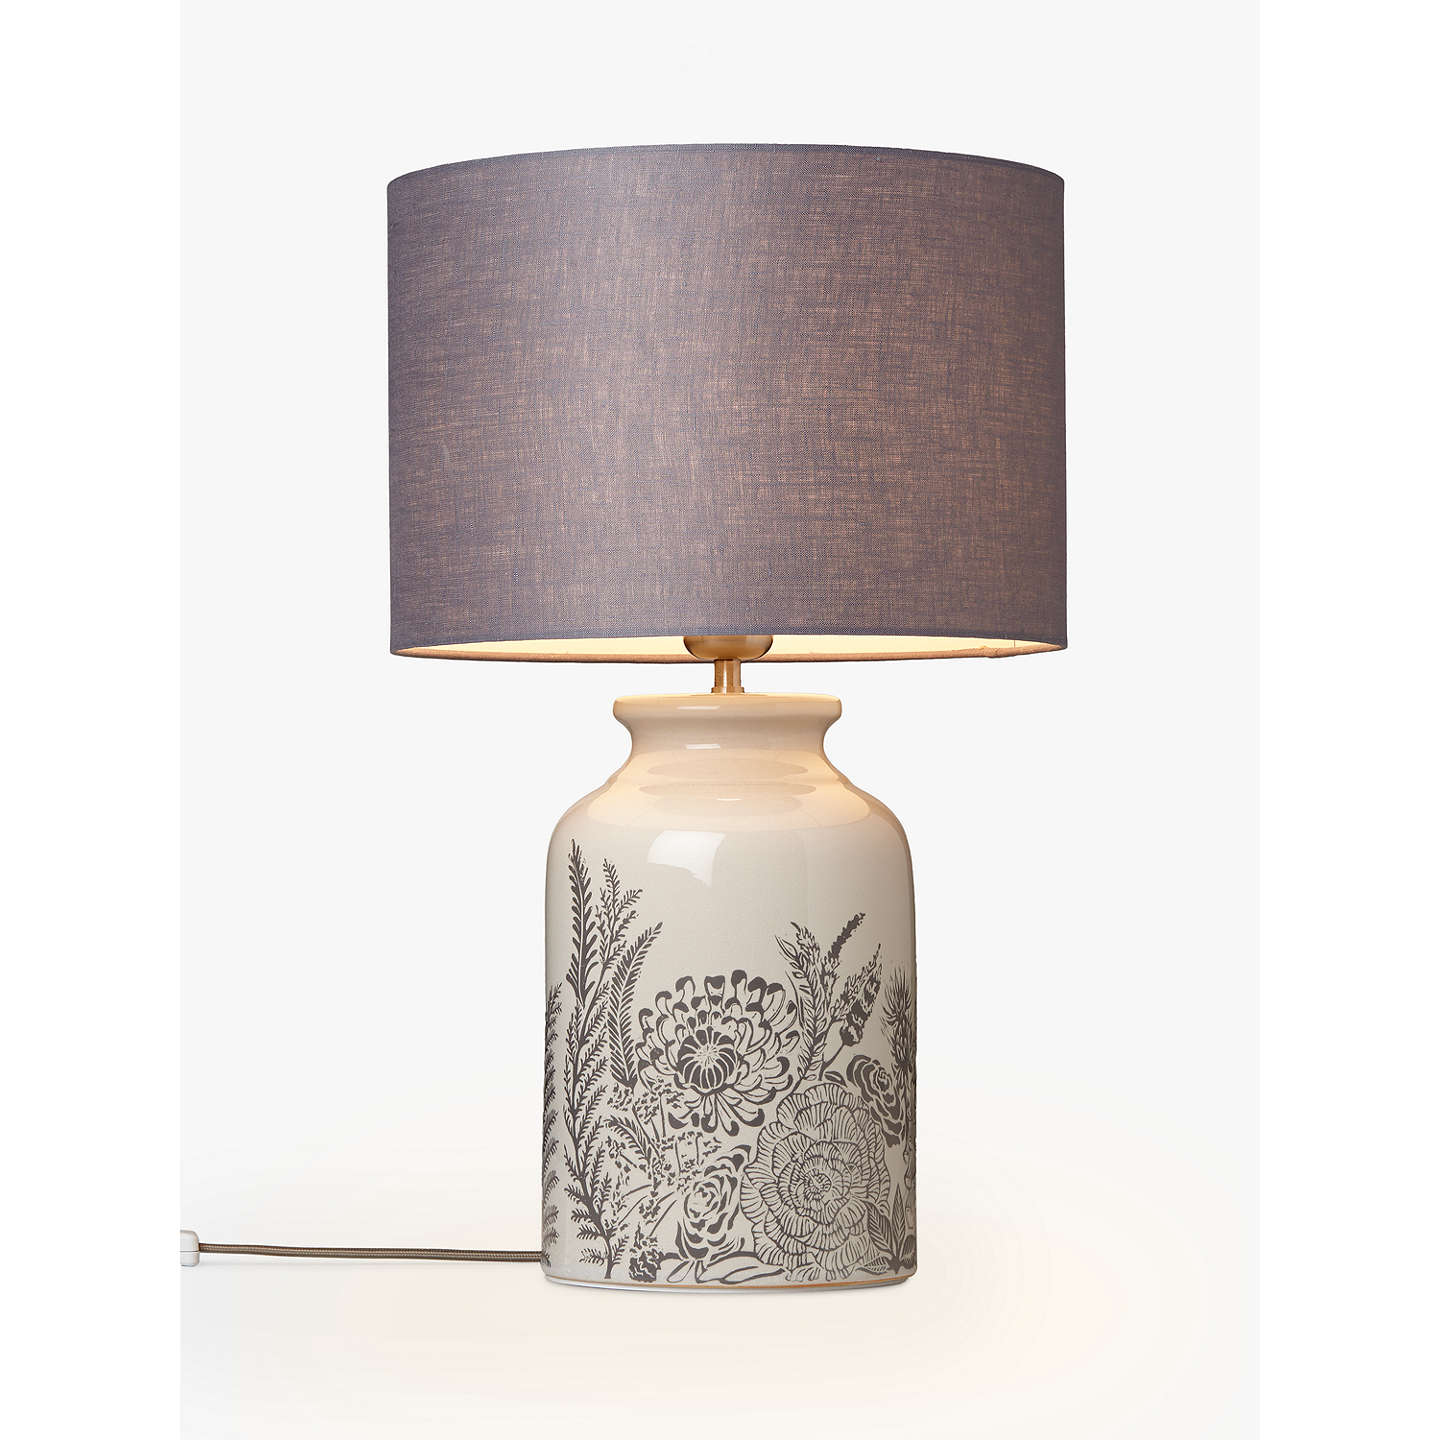 John lewis woodcroft crackle glaze table lamp cream at john lewis buyjohn lewis woodcroft crackle glaze table lamp cream online at johnlewis aloadofball